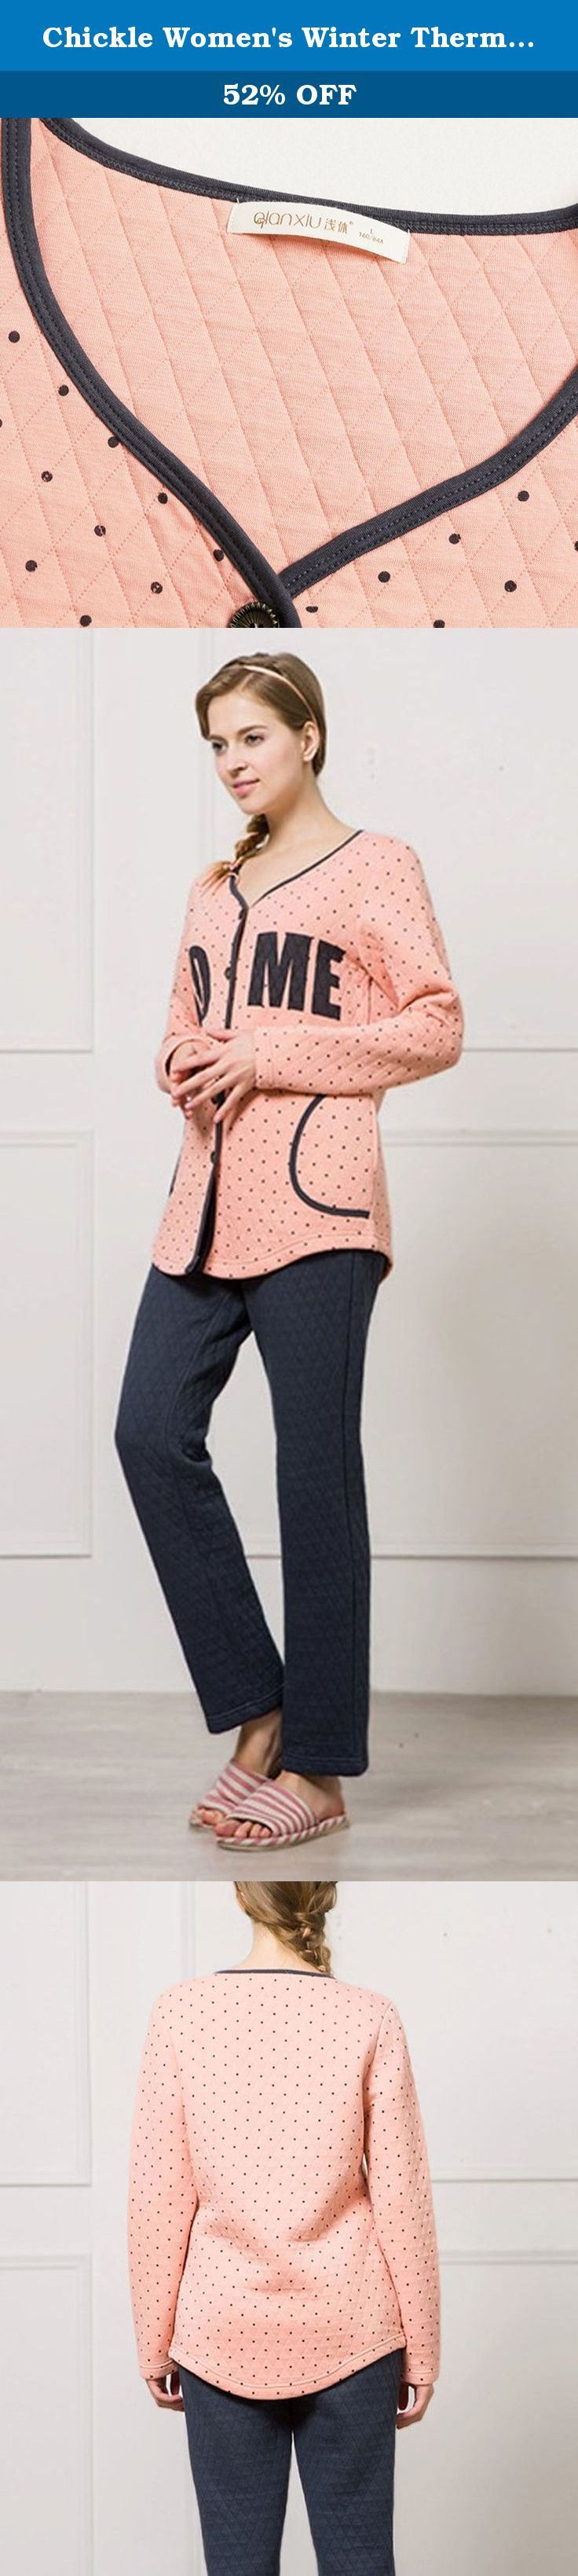 Chickle Women's Winter Thermal Nightwear Home Cotton Pajama Set Pink. Cotton pajama set featuring collarless button clouse,dot pattern and wording plaid,soft warm side phone pocket,perfect for sofa wear at home.